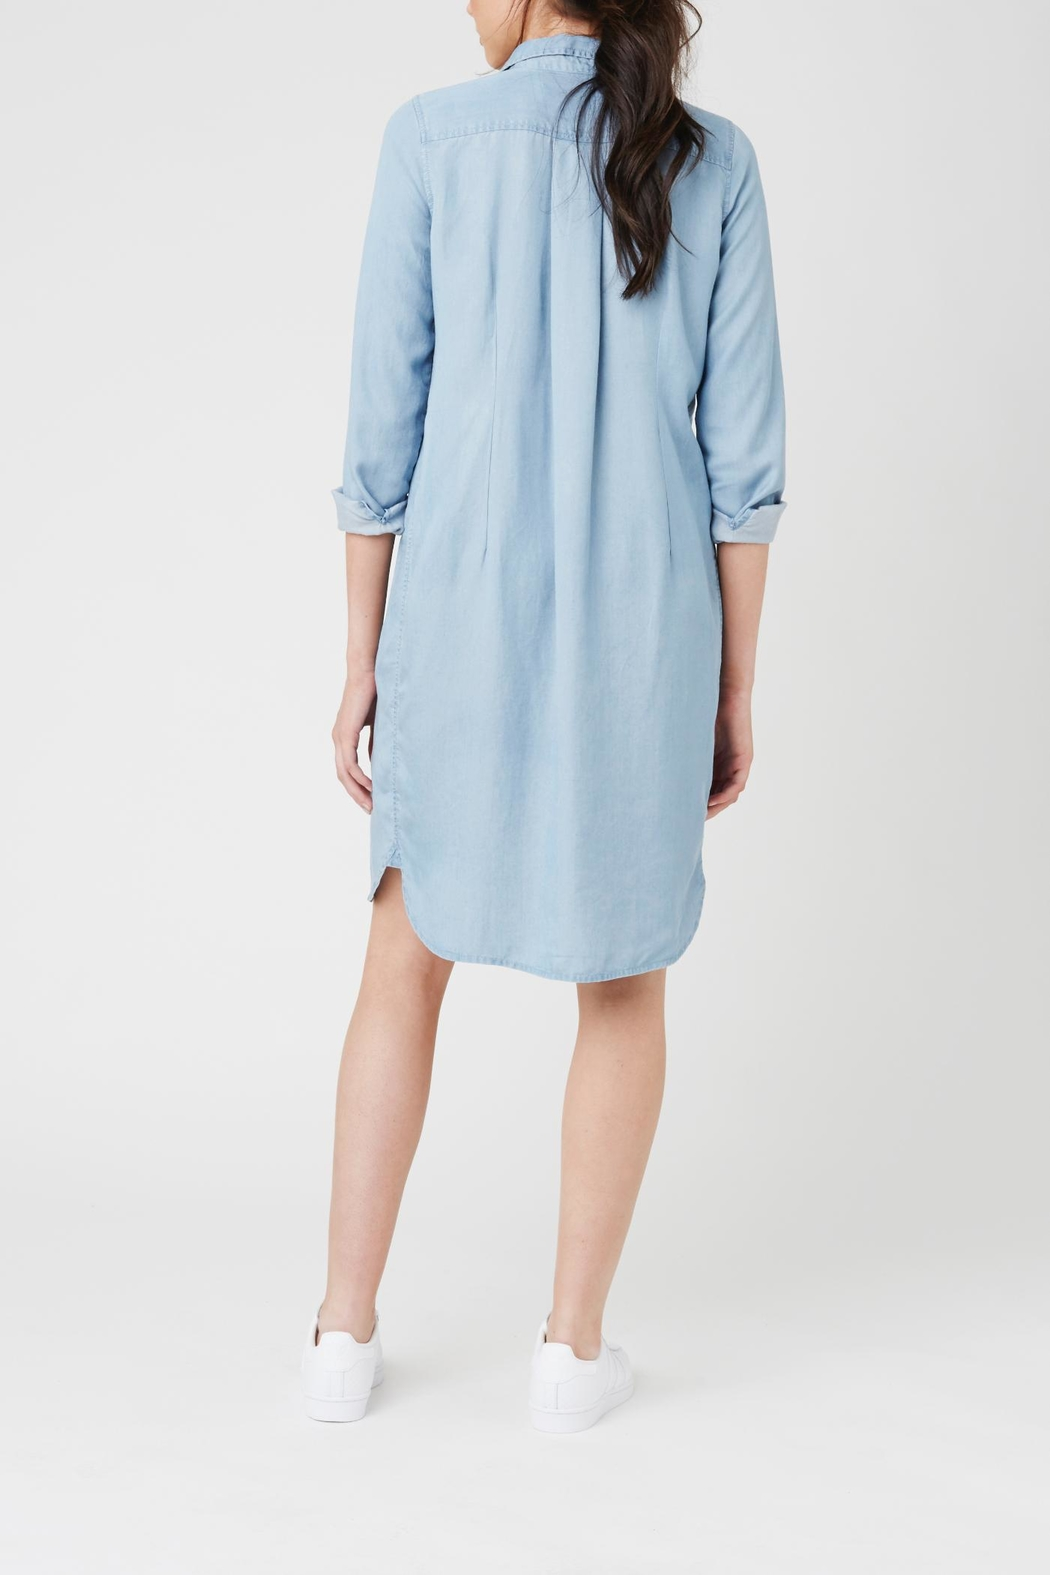 Ripe Maternity Weekend Shirt Dress - Front Full Image